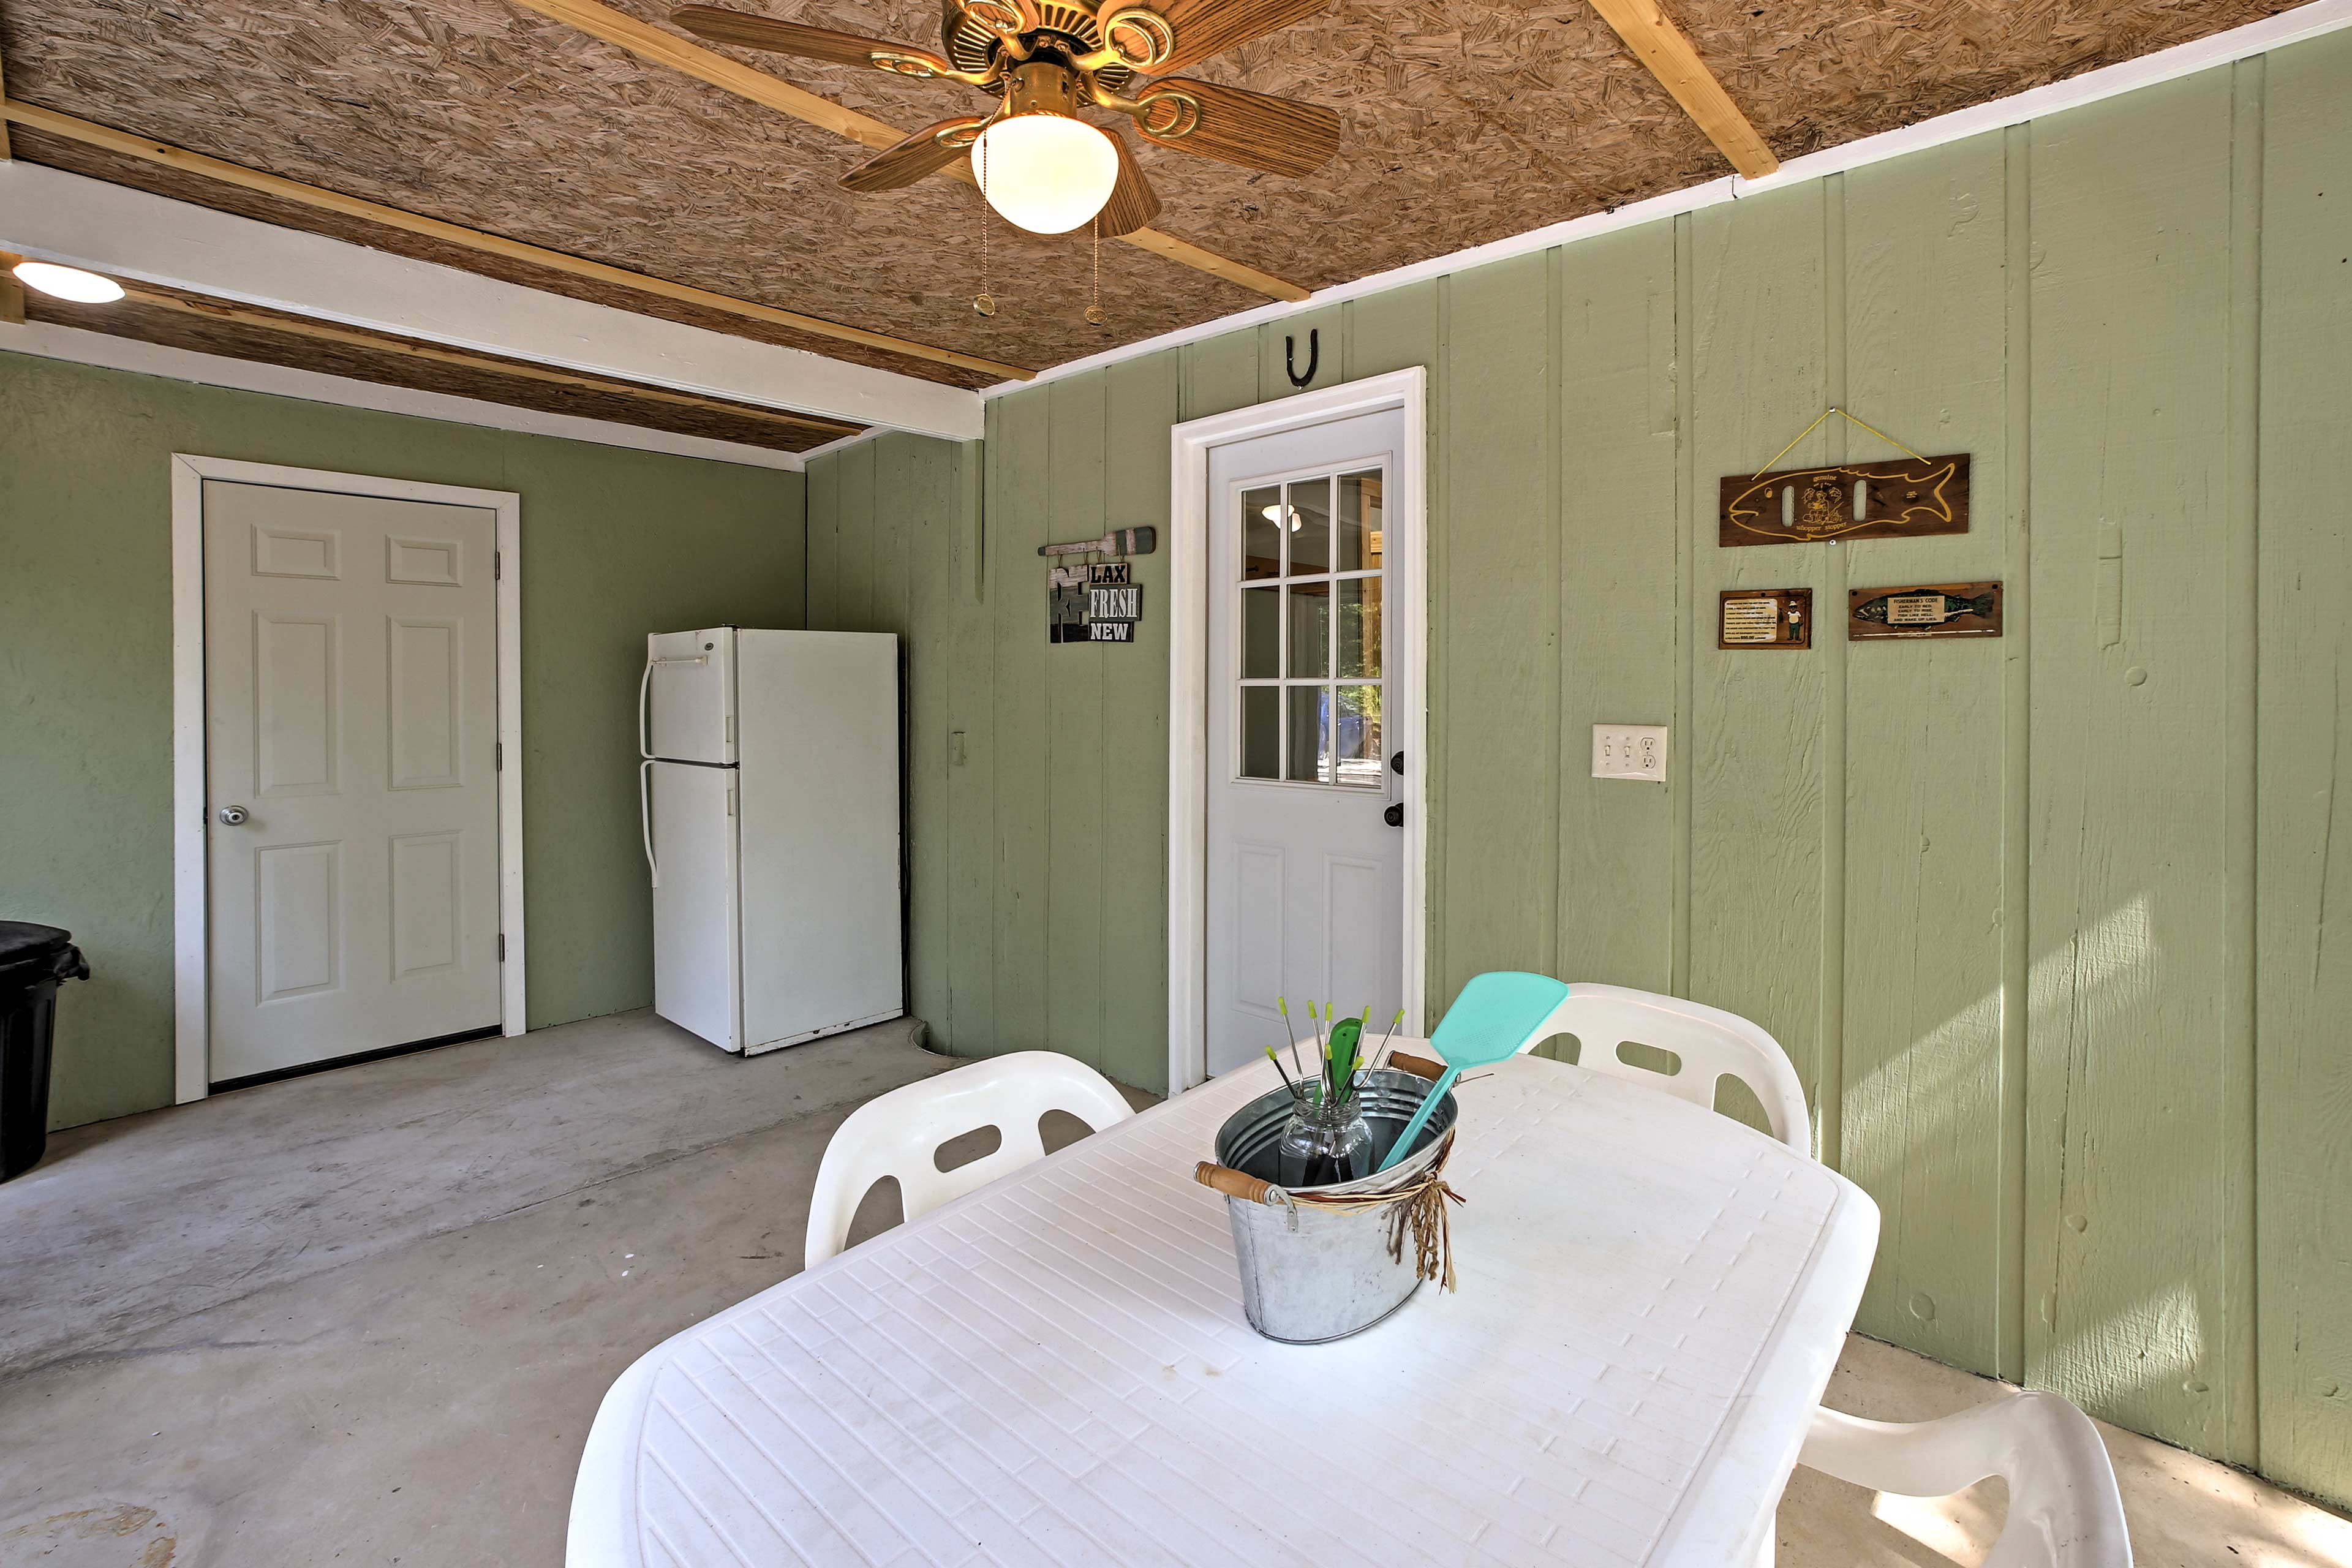 Play card games or enjoy morning coffee in this bright space.